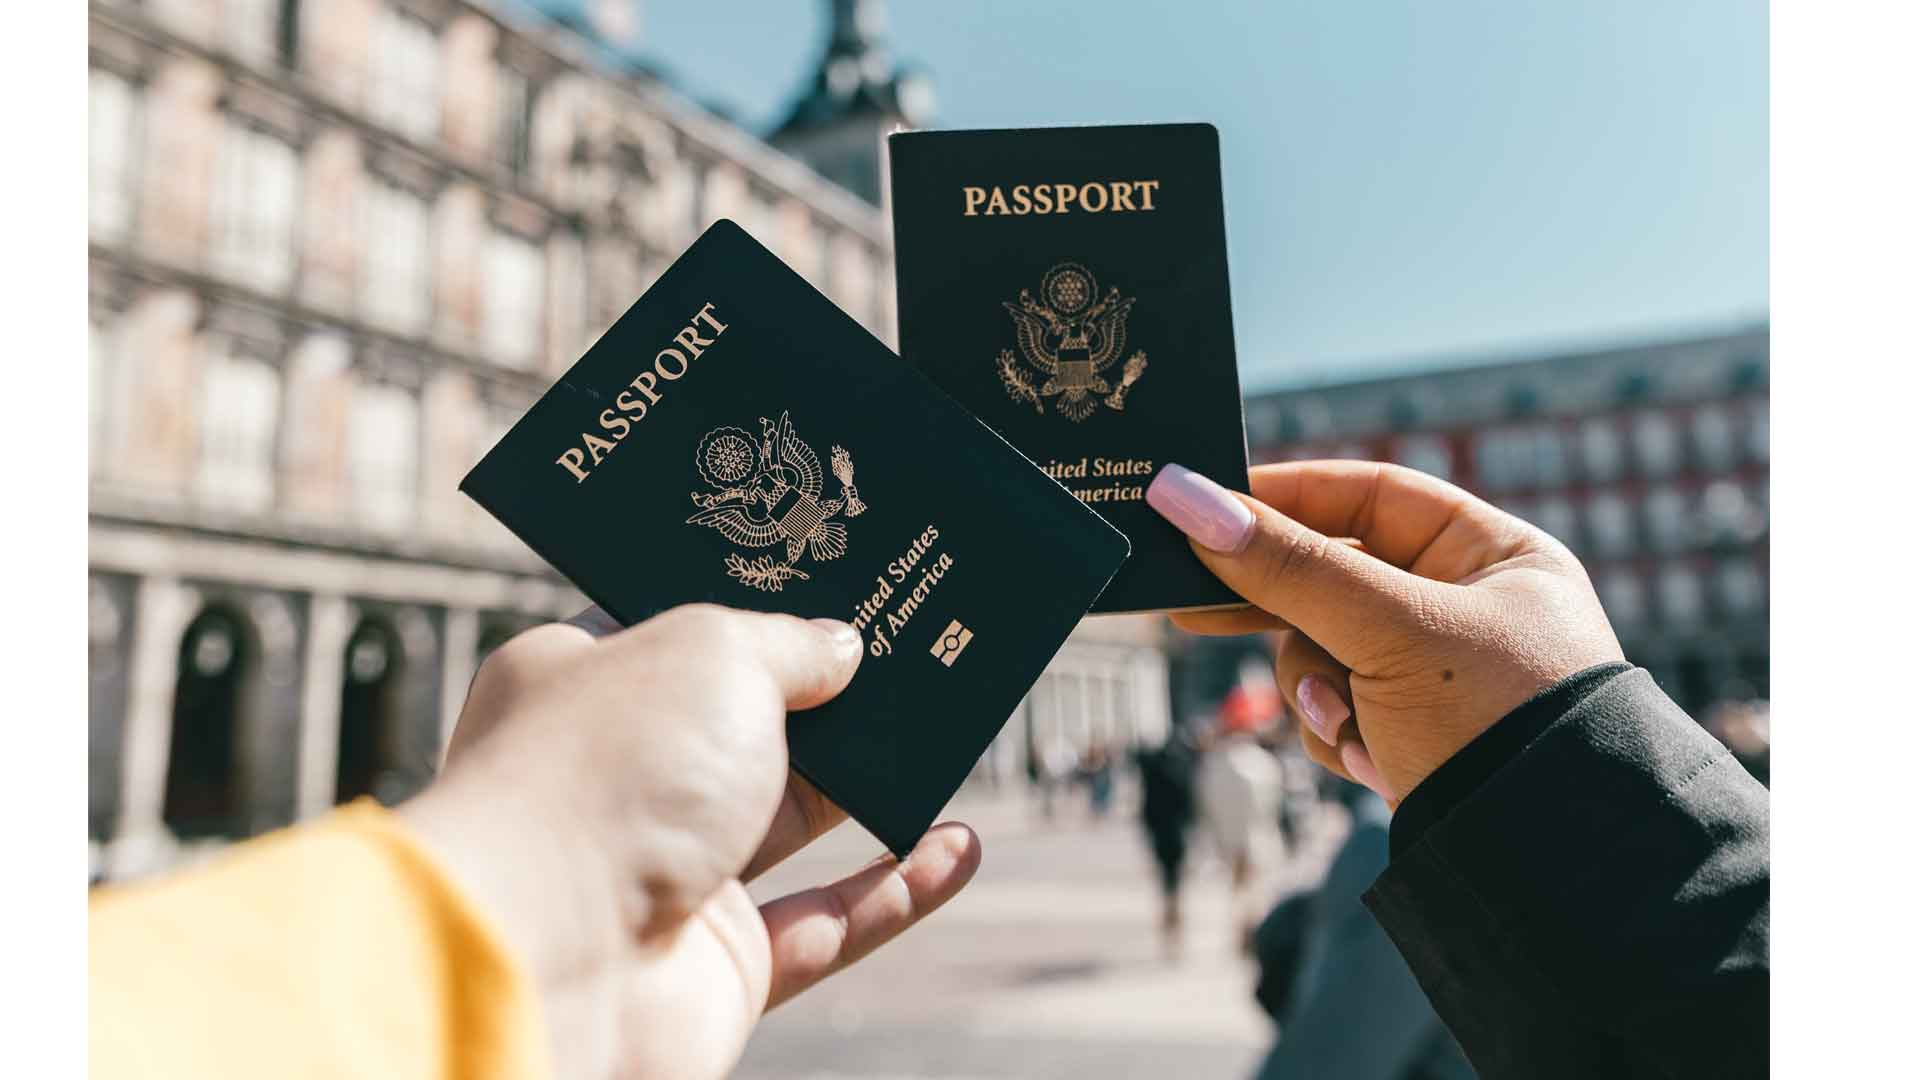 HOW TO APPLY FOR A U.S VISA: A STEP BY STEP GUIDE